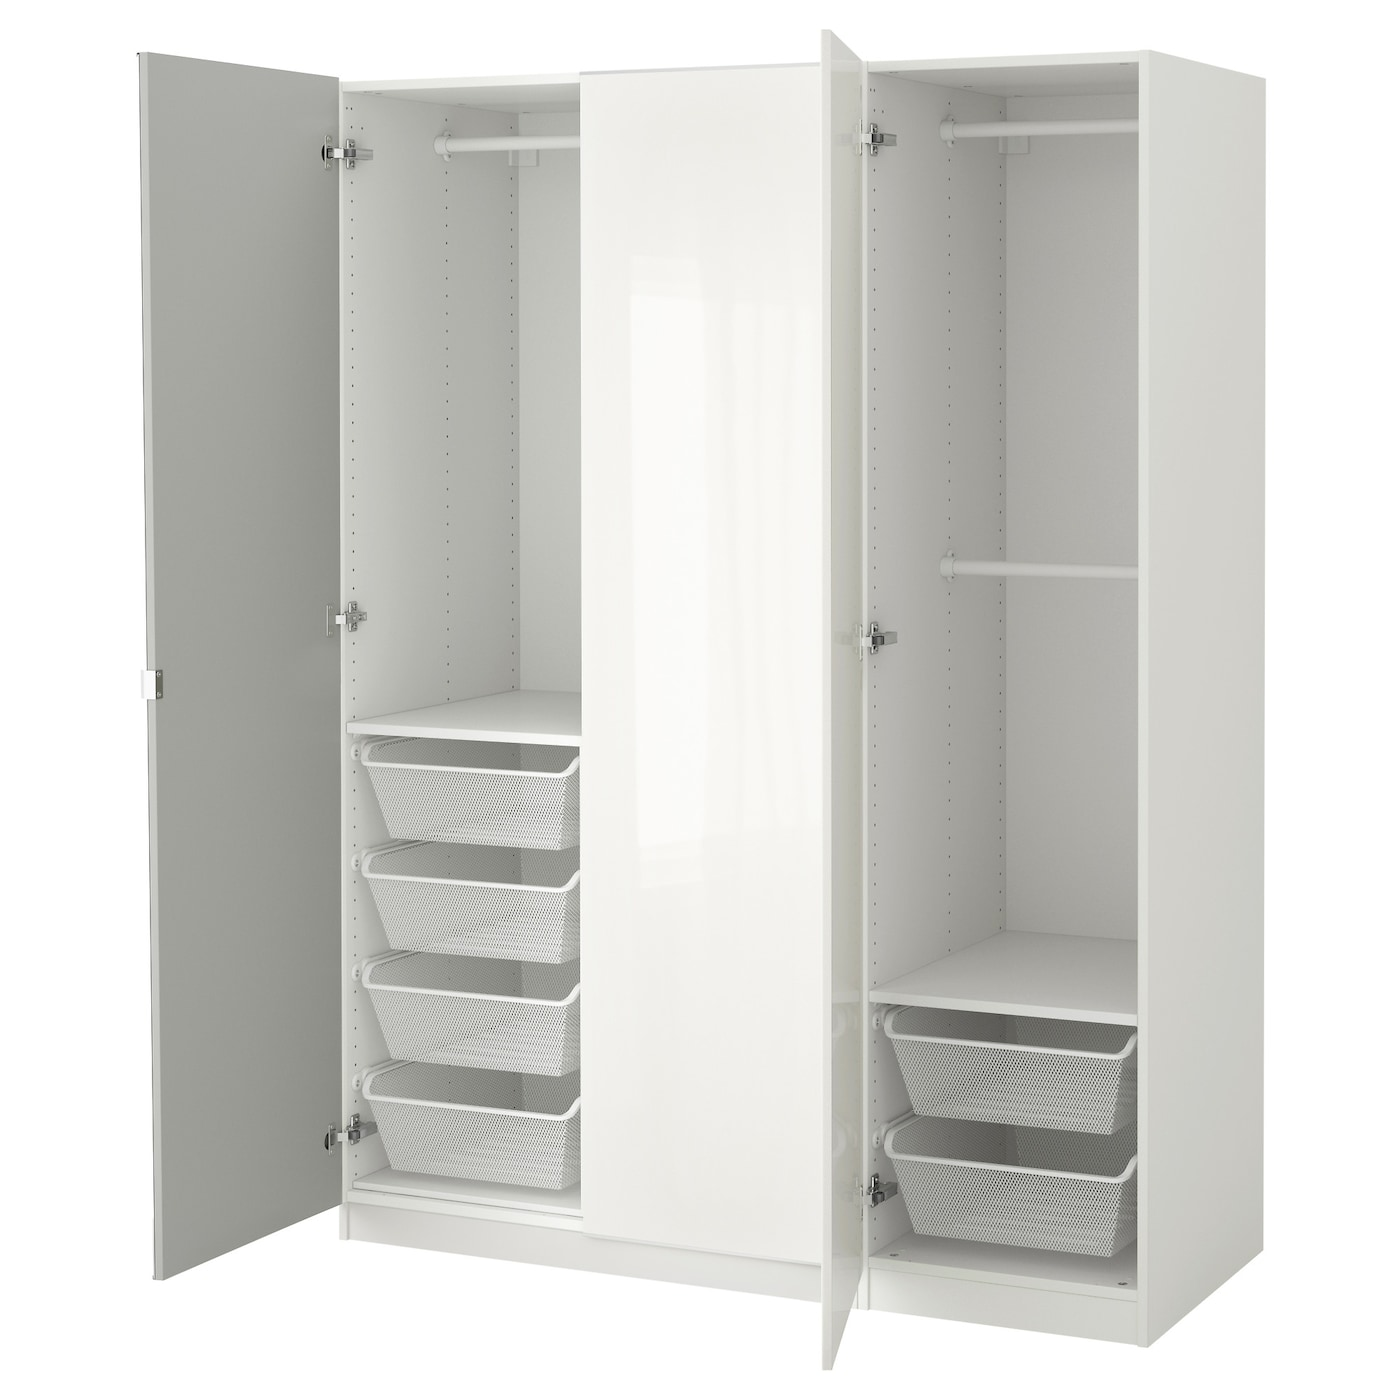 pax wardrobe white fardal vikedal 150 x 60 x 201 cm ikea. Black Bedroom Furniture Sets. Home Design Ideas